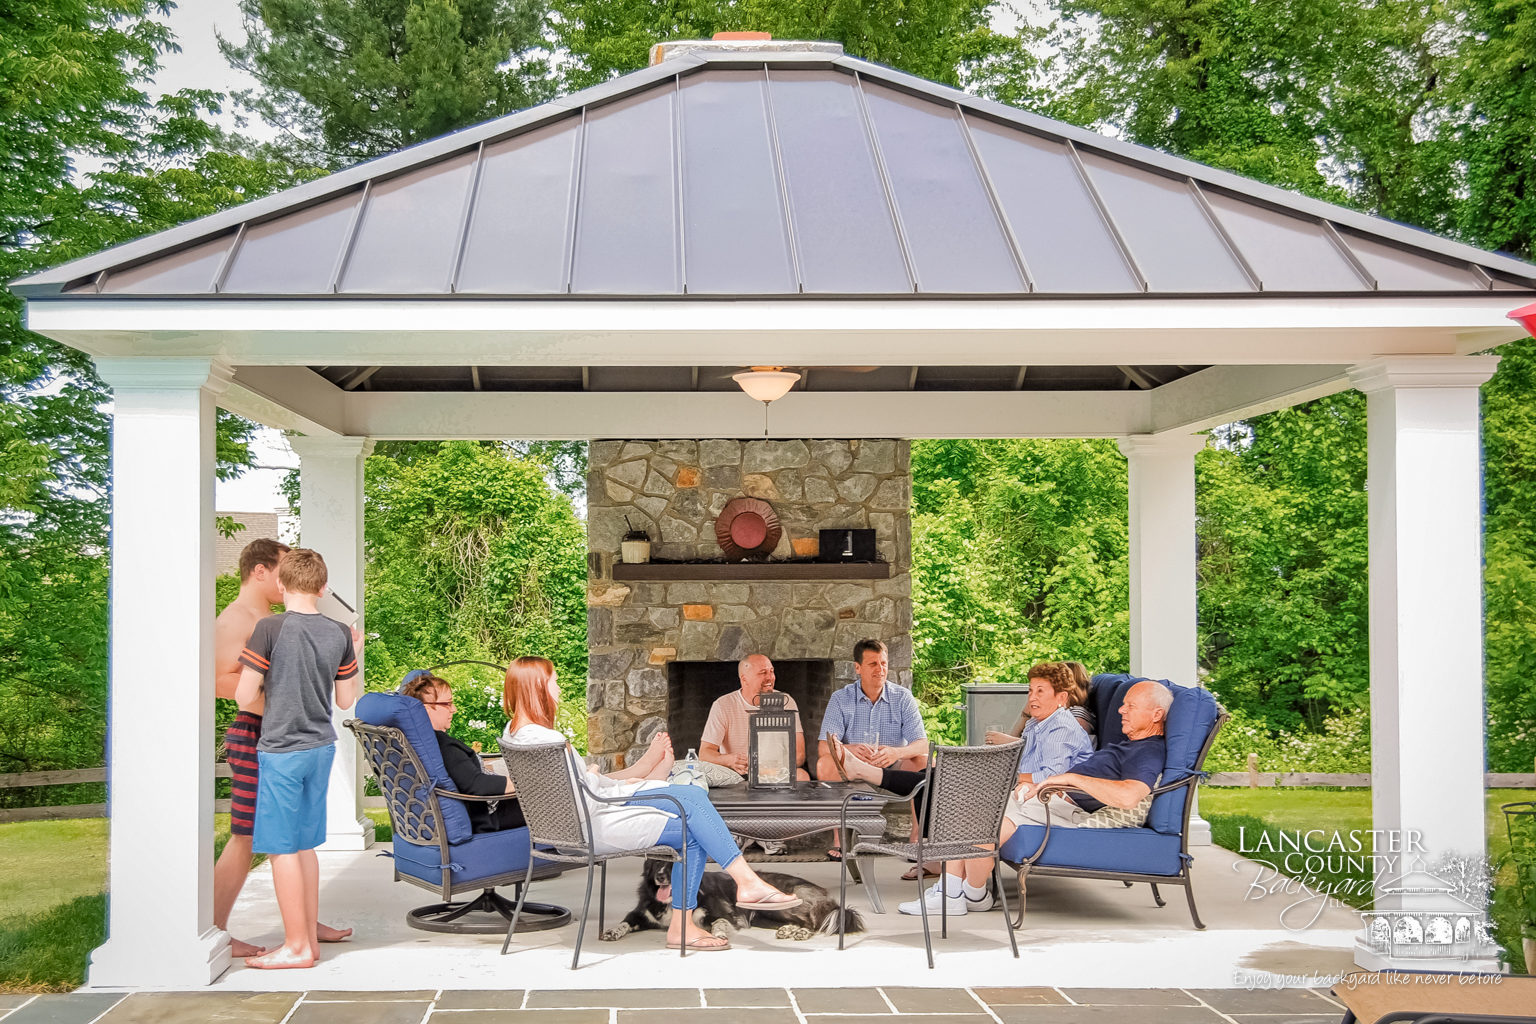 beautiful backyard luxury pavilion for family fun in chester spr